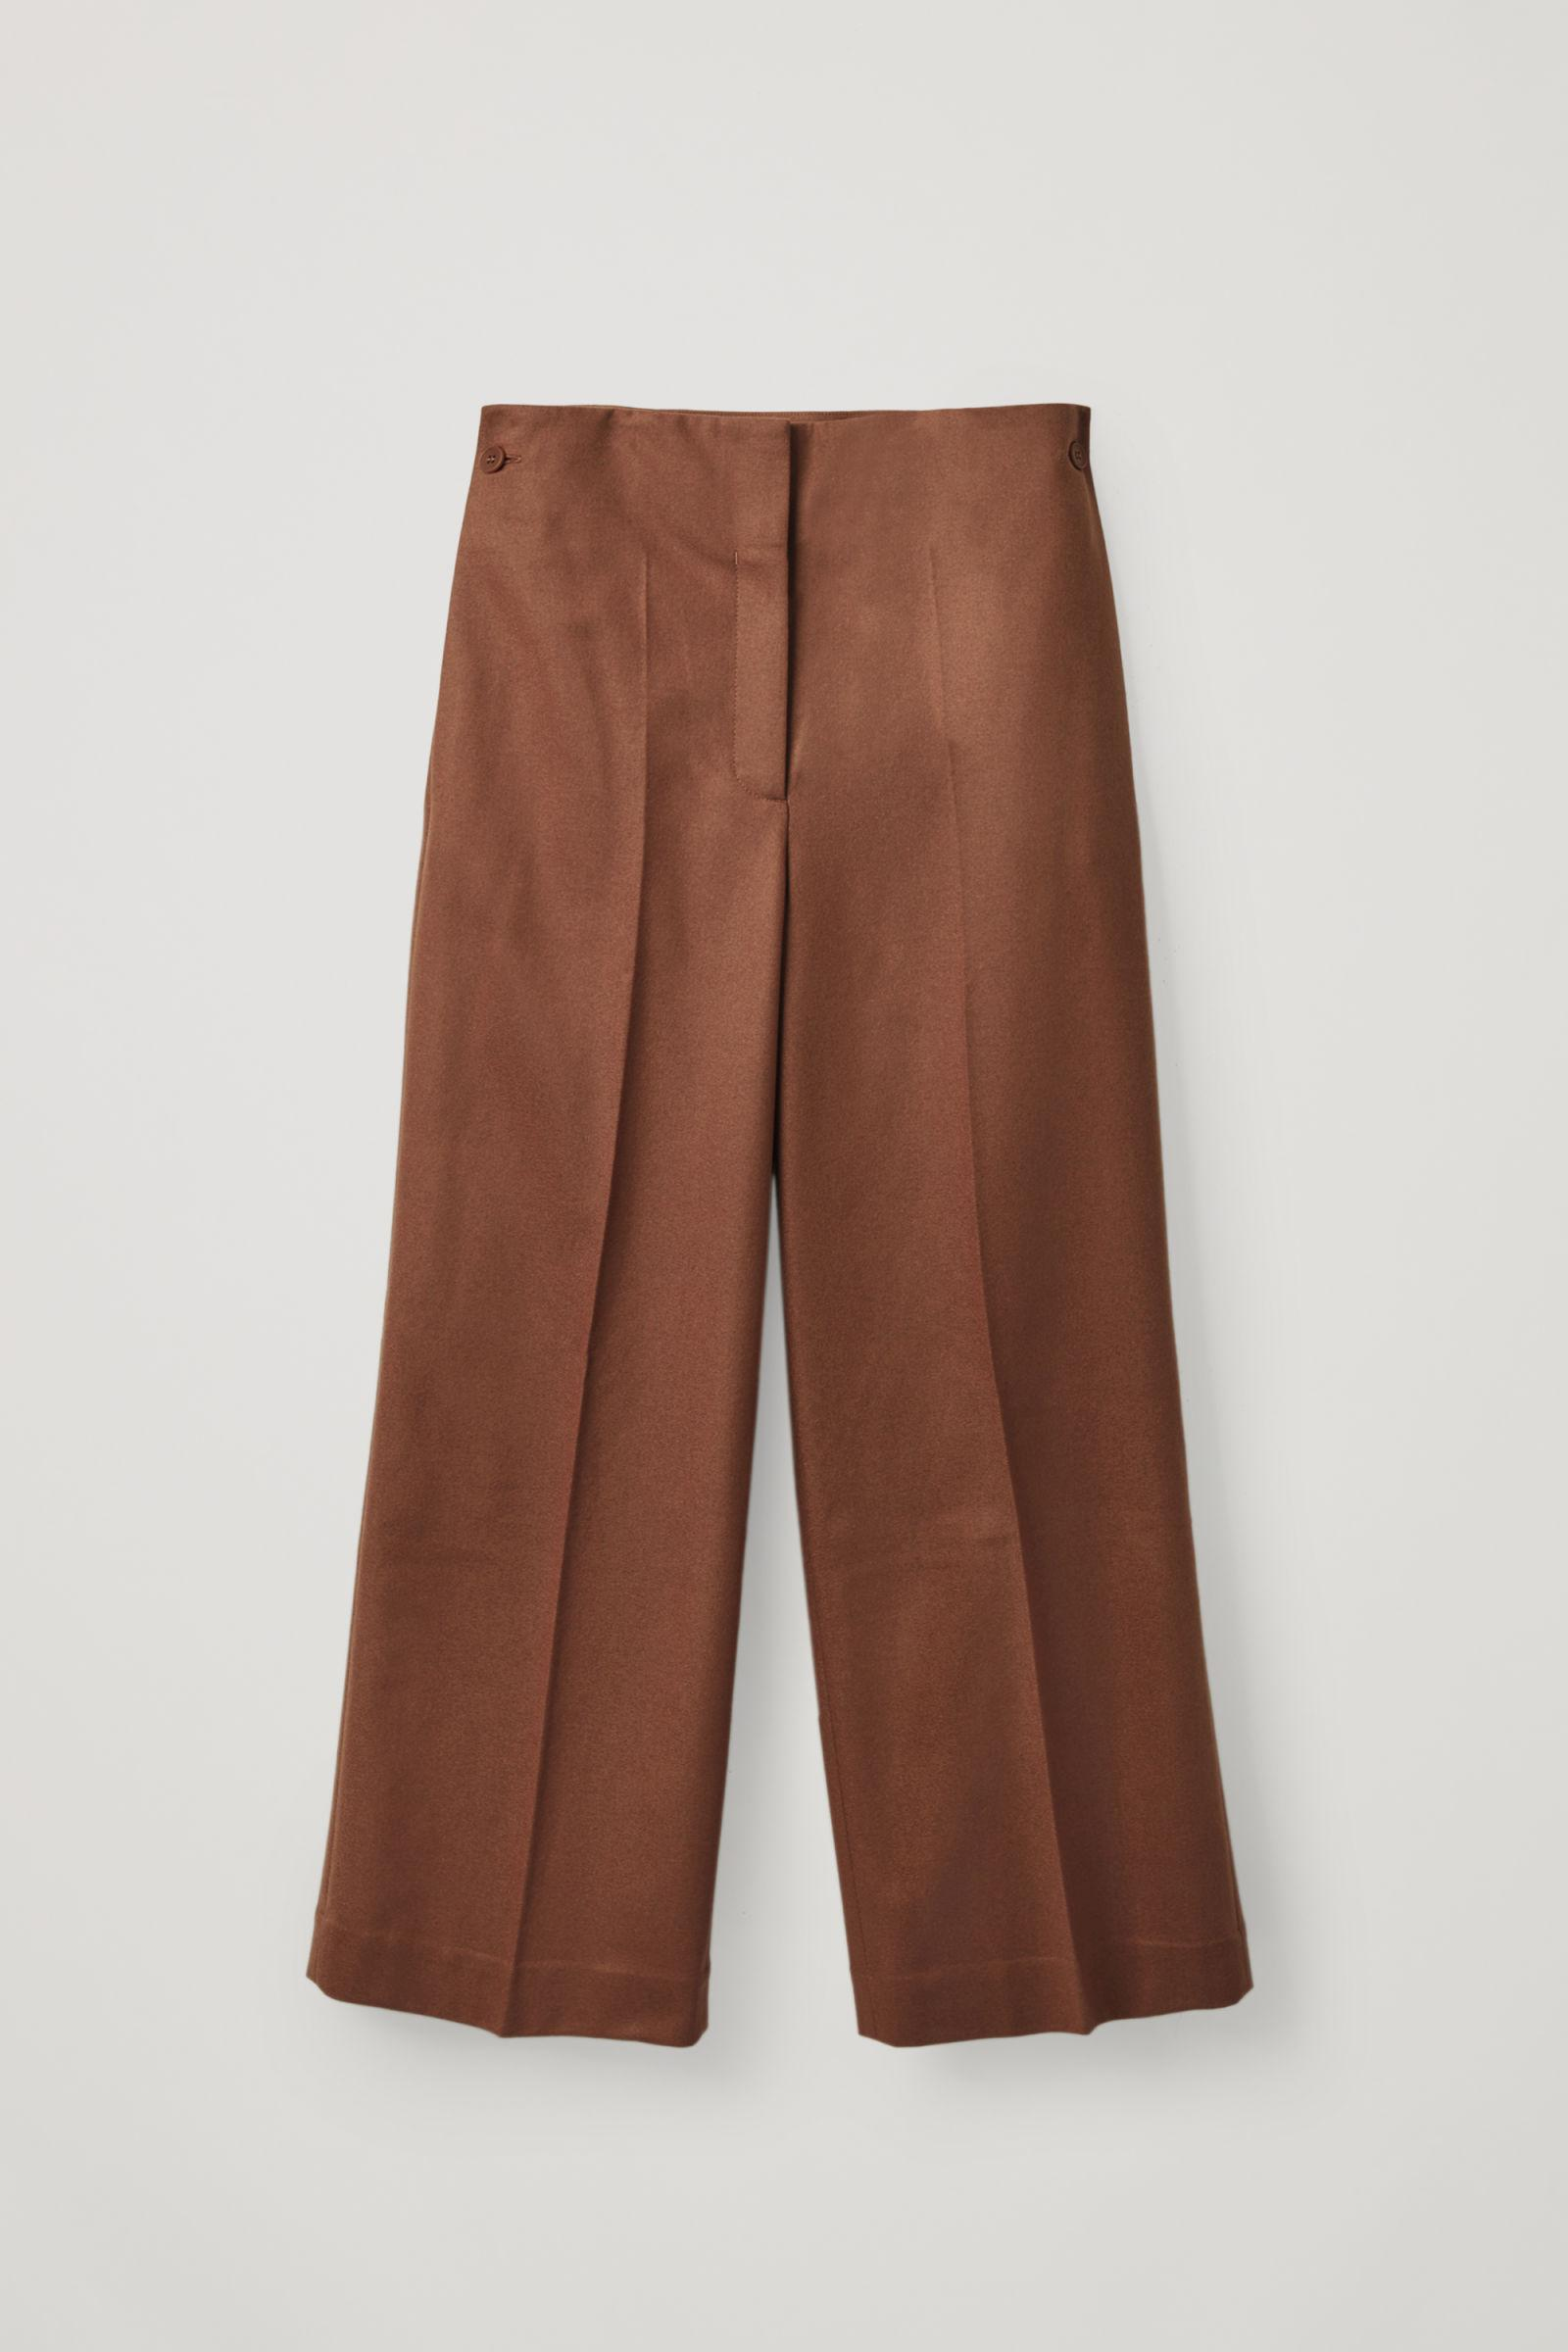 WOOL-CASHMERE TAILORED PANTS 5